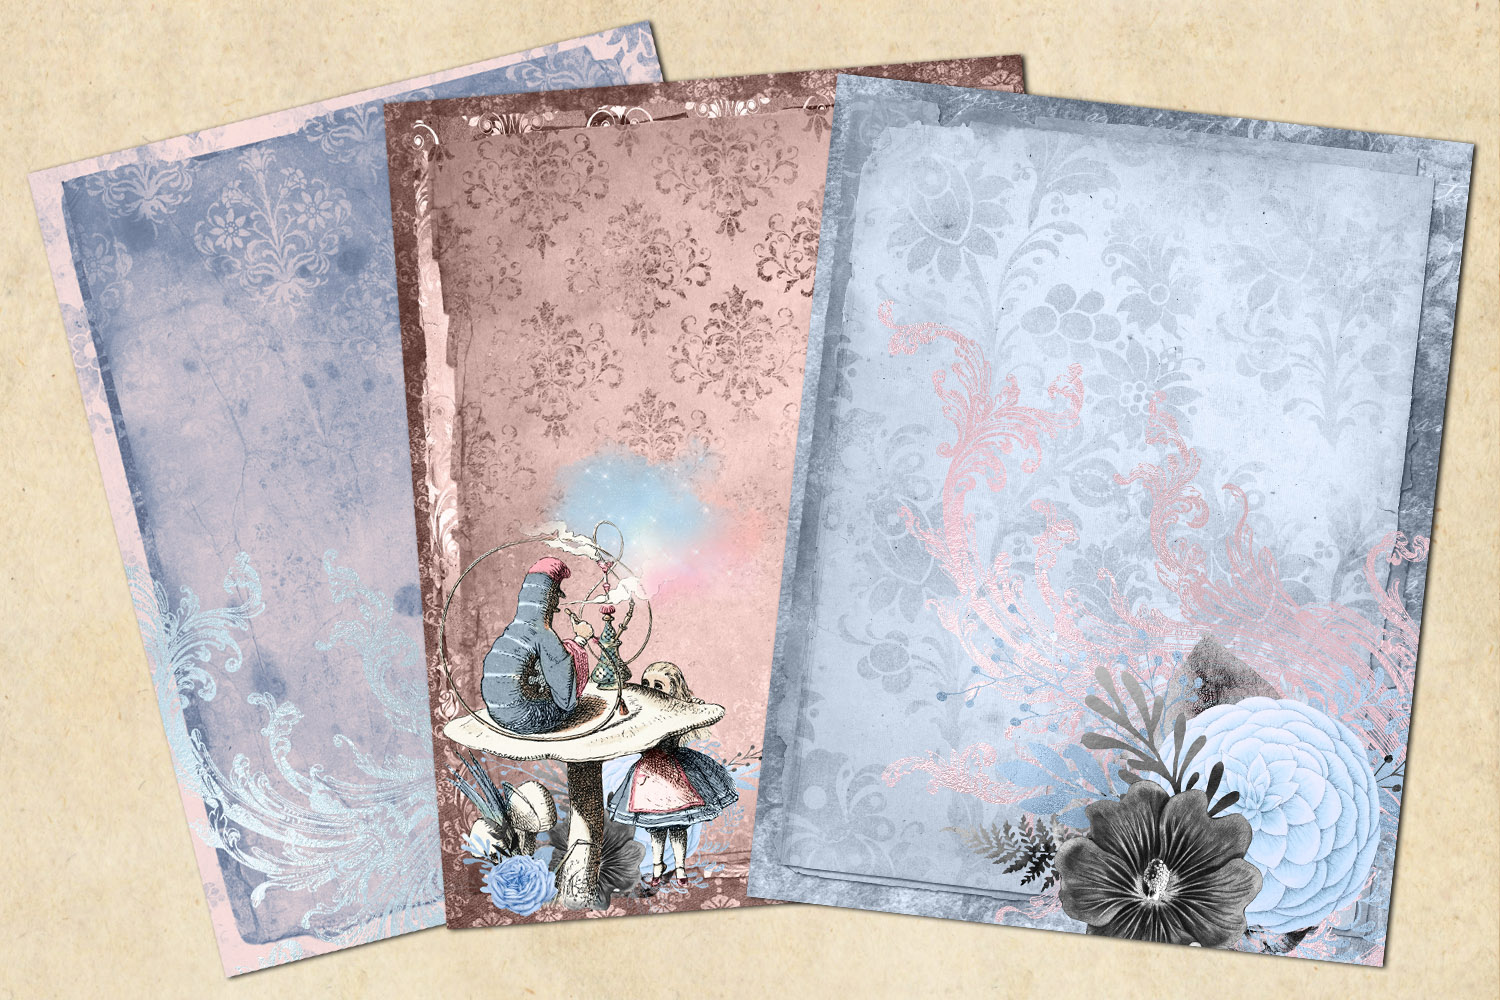 Dusty Blue and Blush Pink Alice in Wonderland Journal Paper example image 2